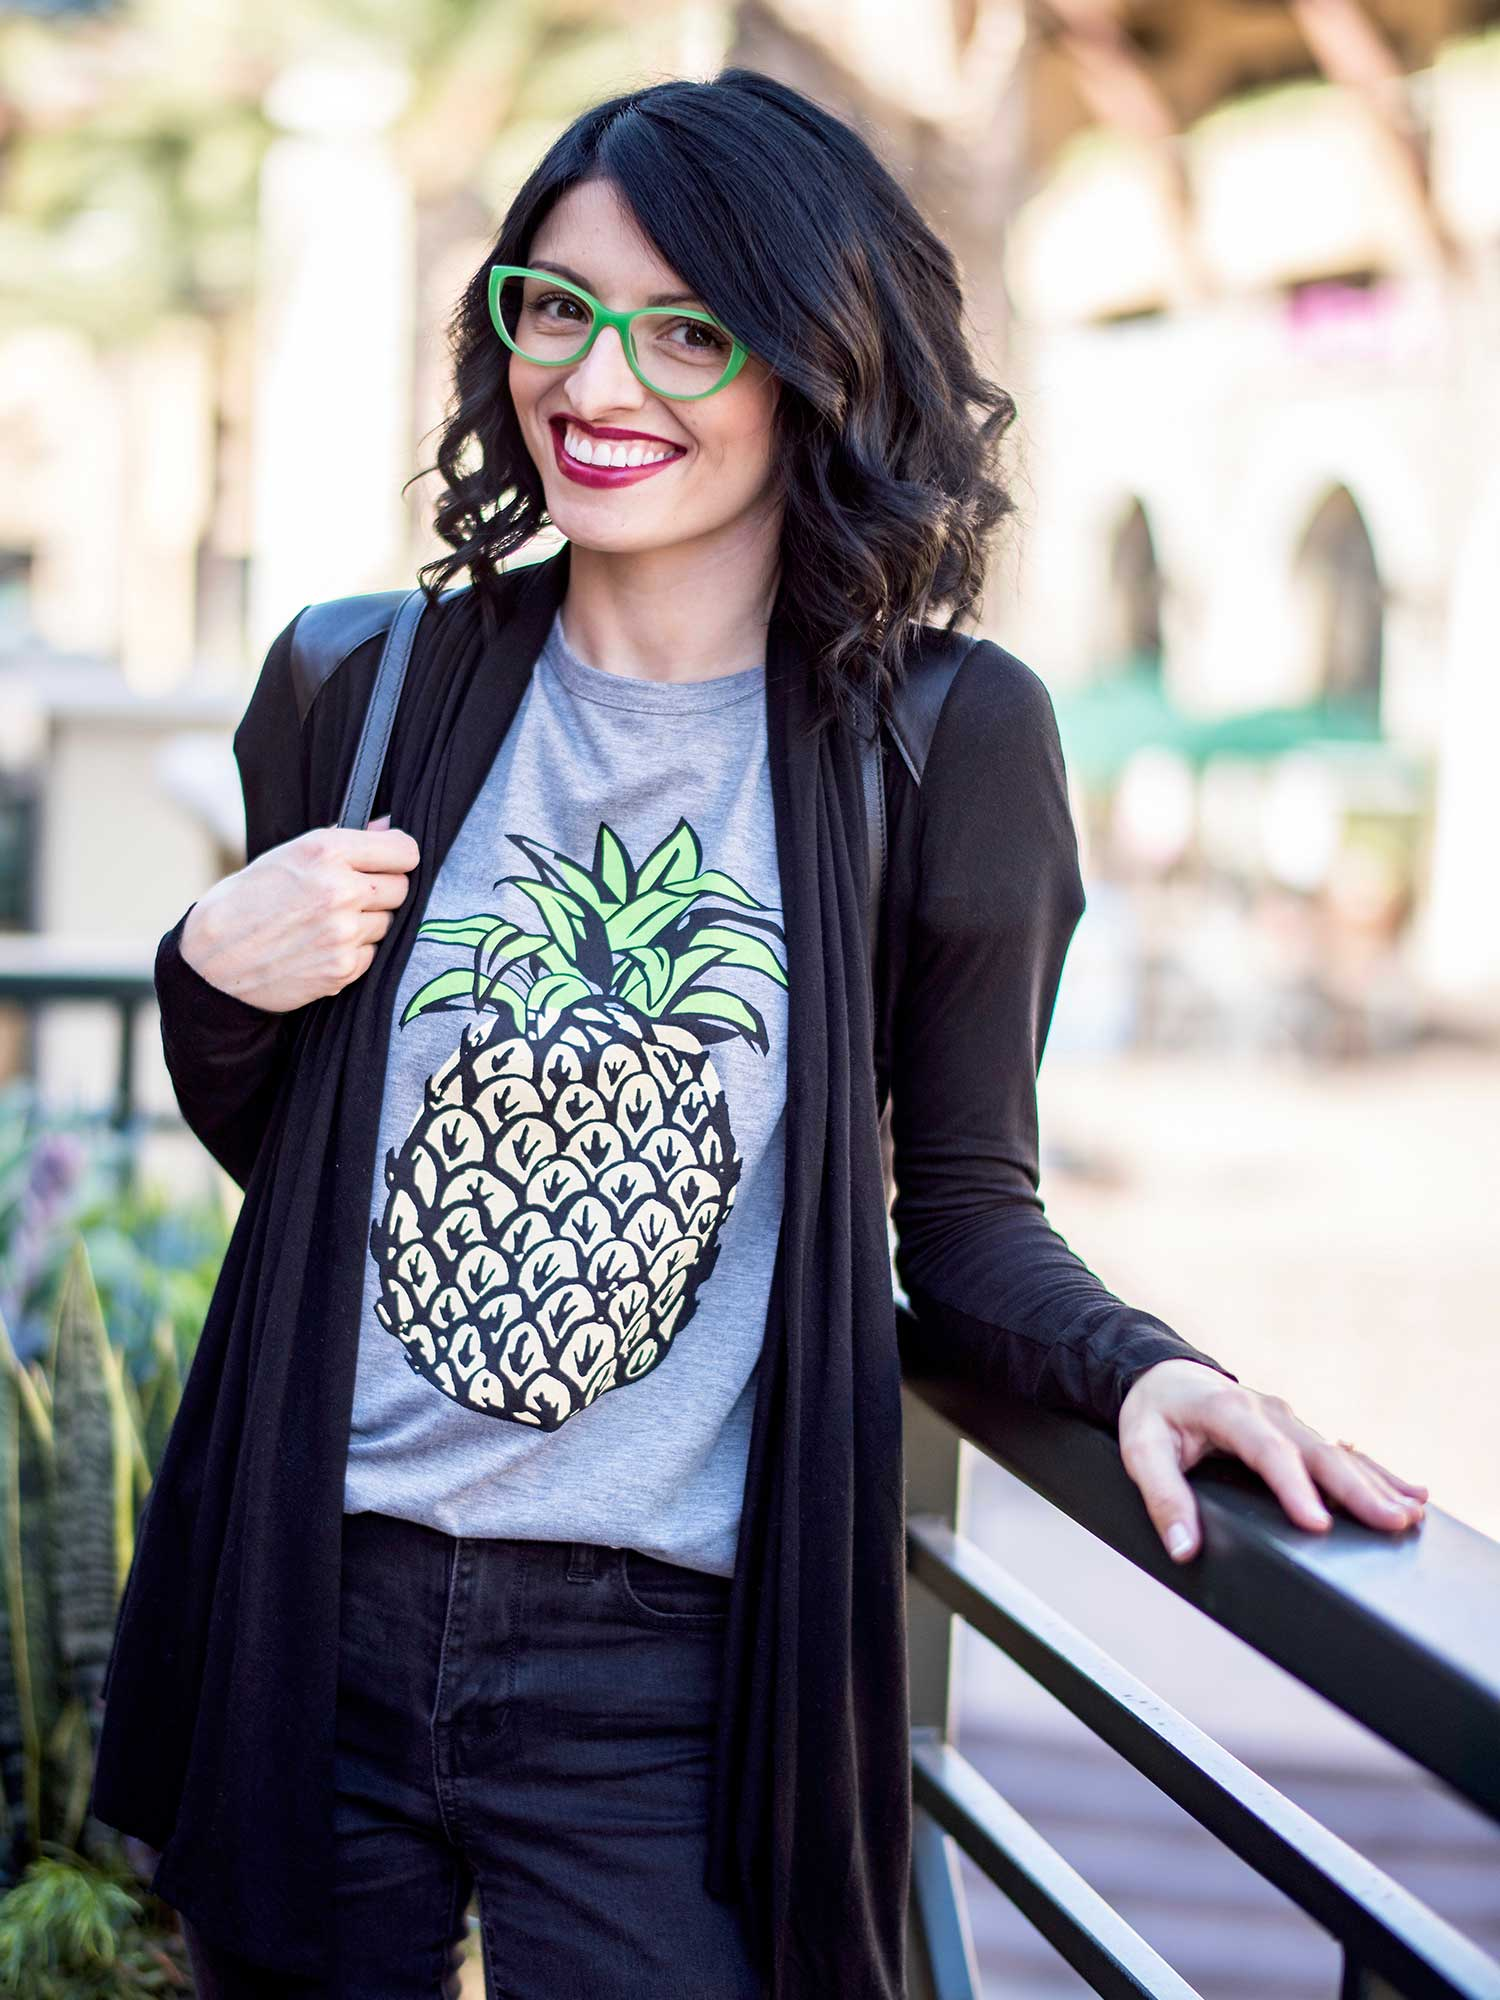 jenna-pilant-san-diego-fashion-blogger-lucky-little-mustardseed-how-to-wear-your-favorite-summer-t-shirt-in-the-fall-3